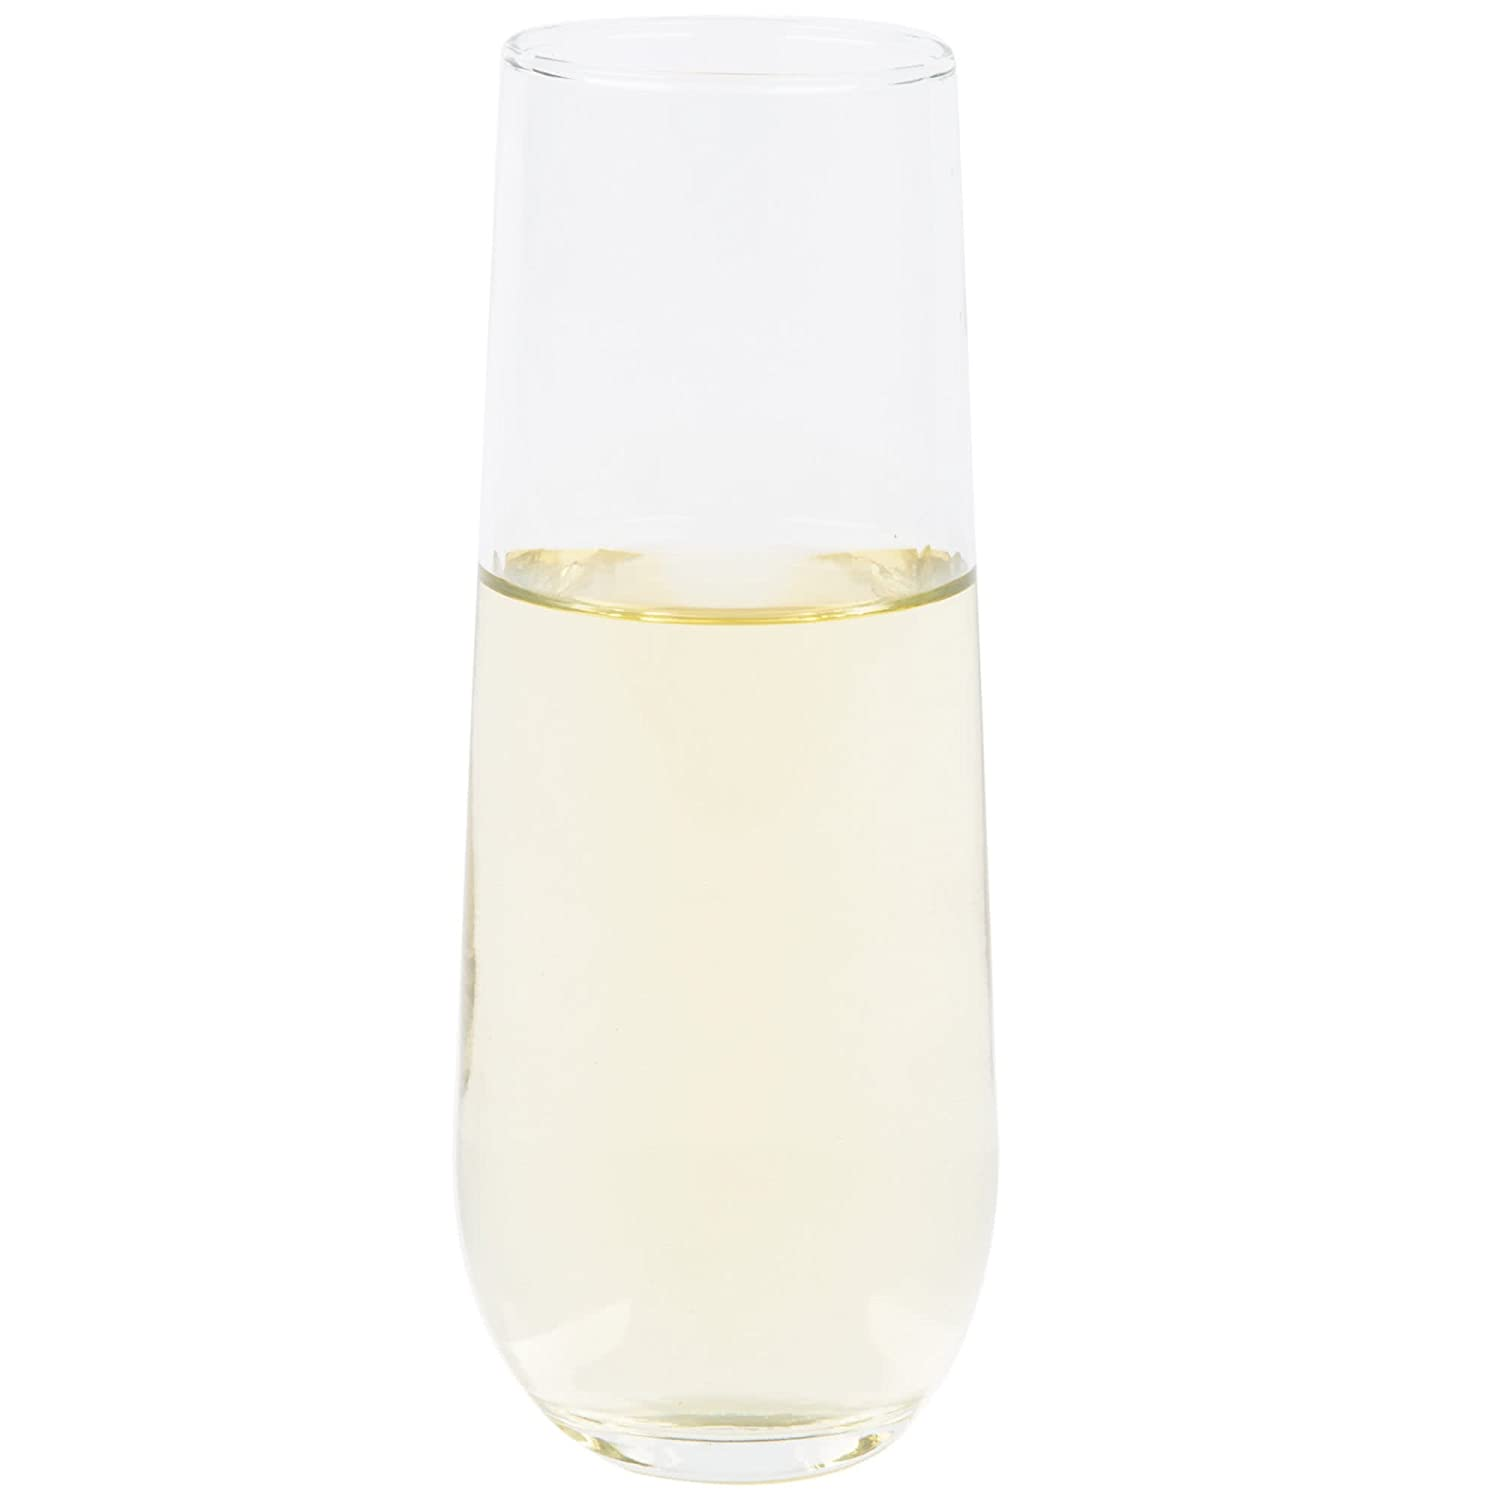 Set of 24 USA Glass Libbey 7.25 oz Stemless Flute Glasses in Clear